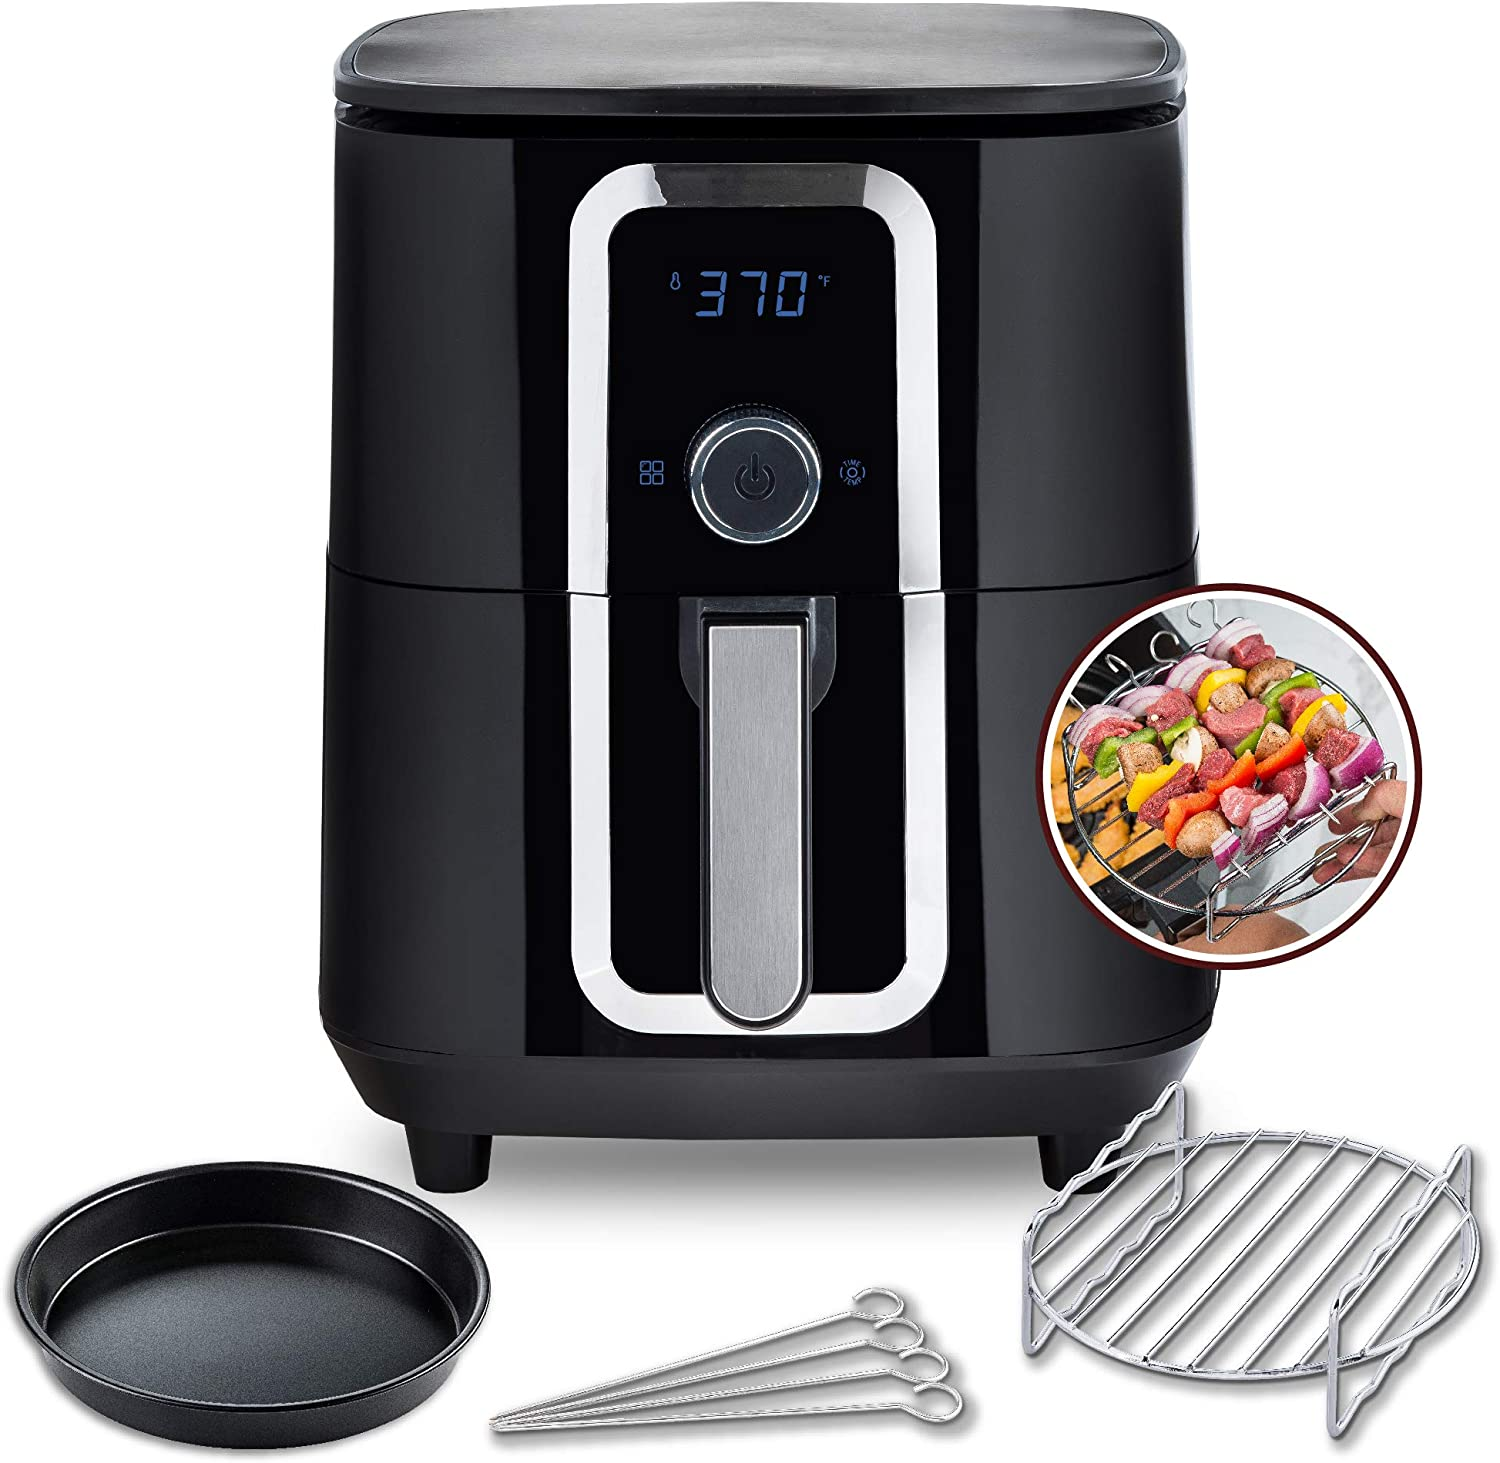 Aria Air Fryers CPA-895 Aria Ceramic Air Fryer, 7Qt, Premium Black with Stainless Steel Accents